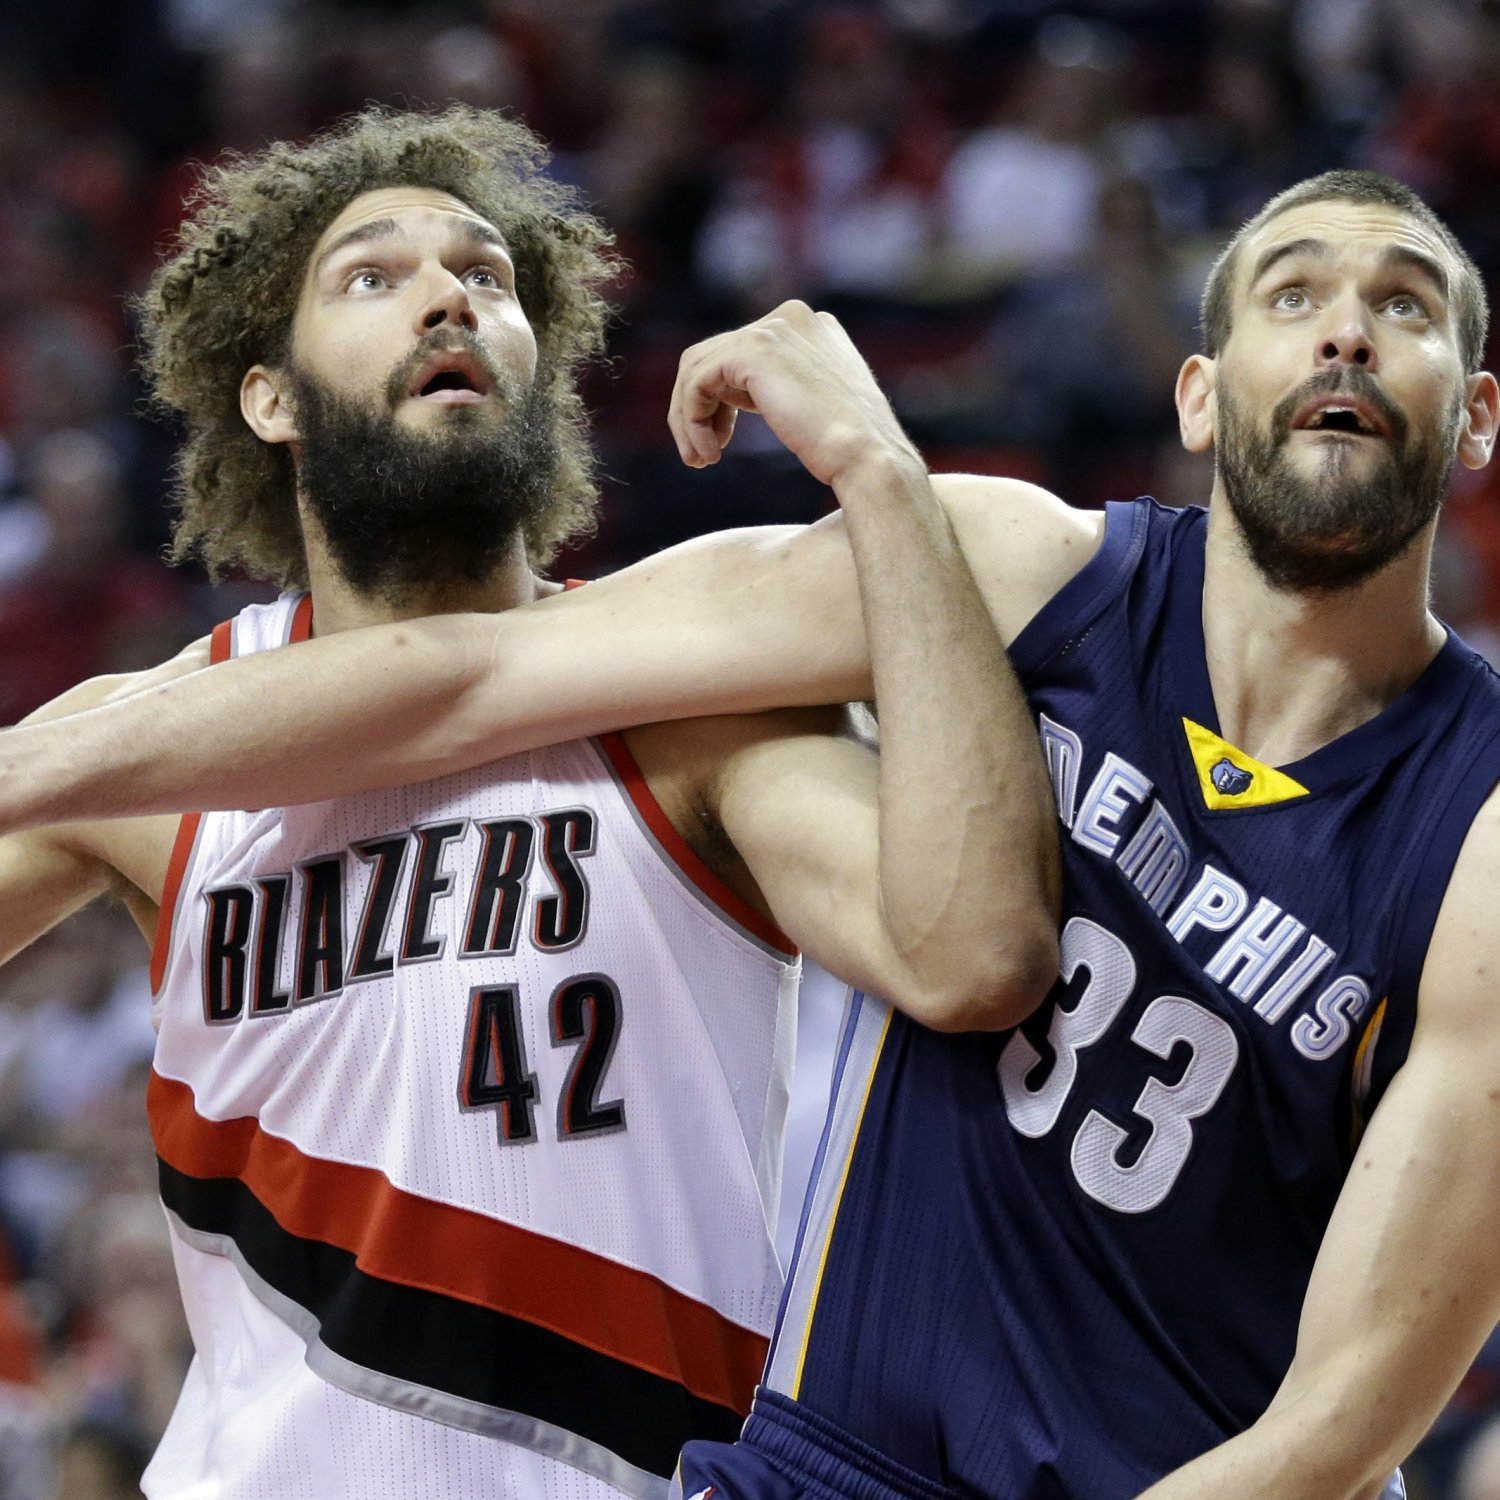 Blazers Roster 2015: NBA Playoff Schedule 2015: Wednesday TV Coverage And Game